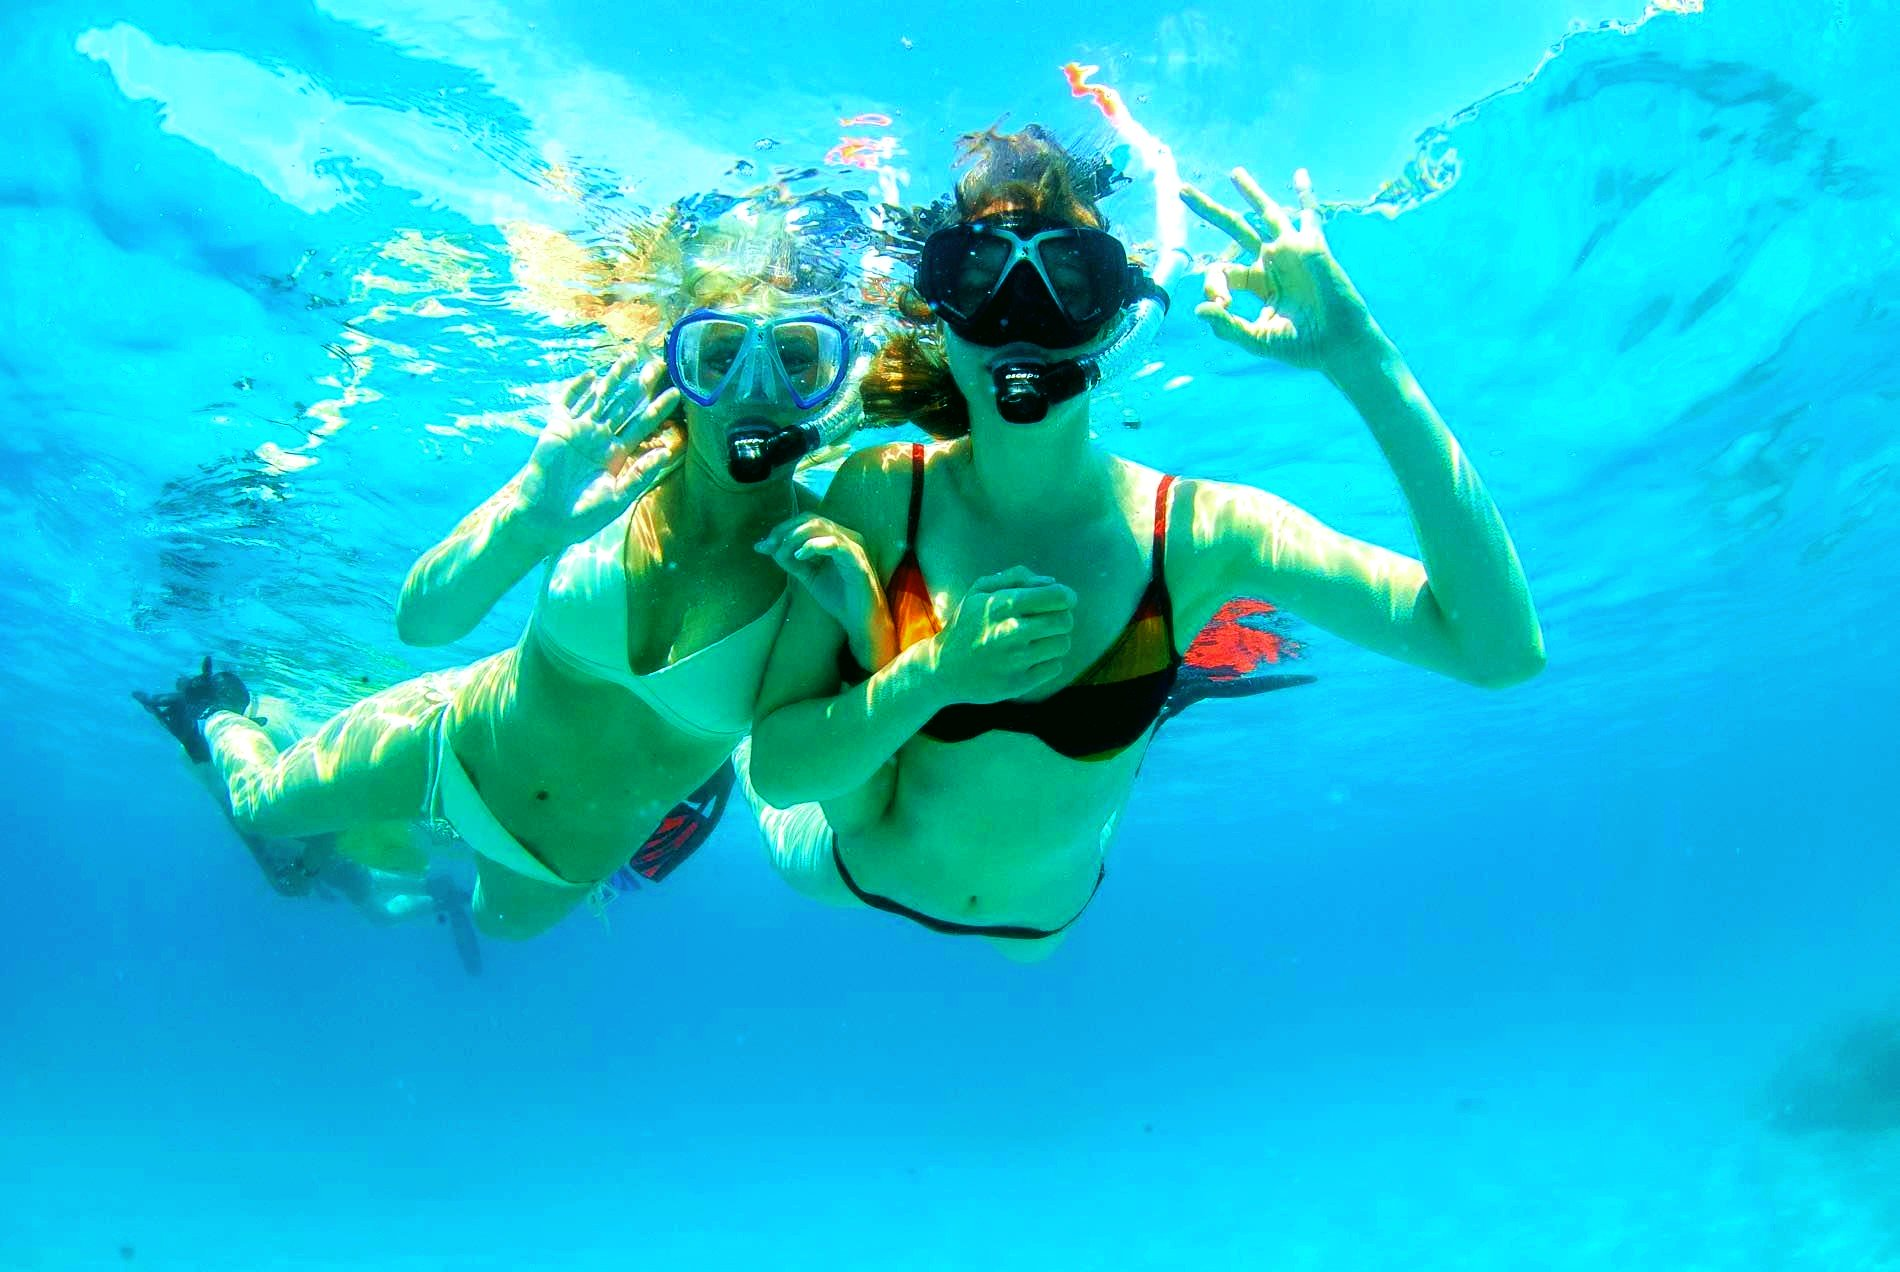 Two girls explore the underwater world of Mallorca on a snorkeling excursion.